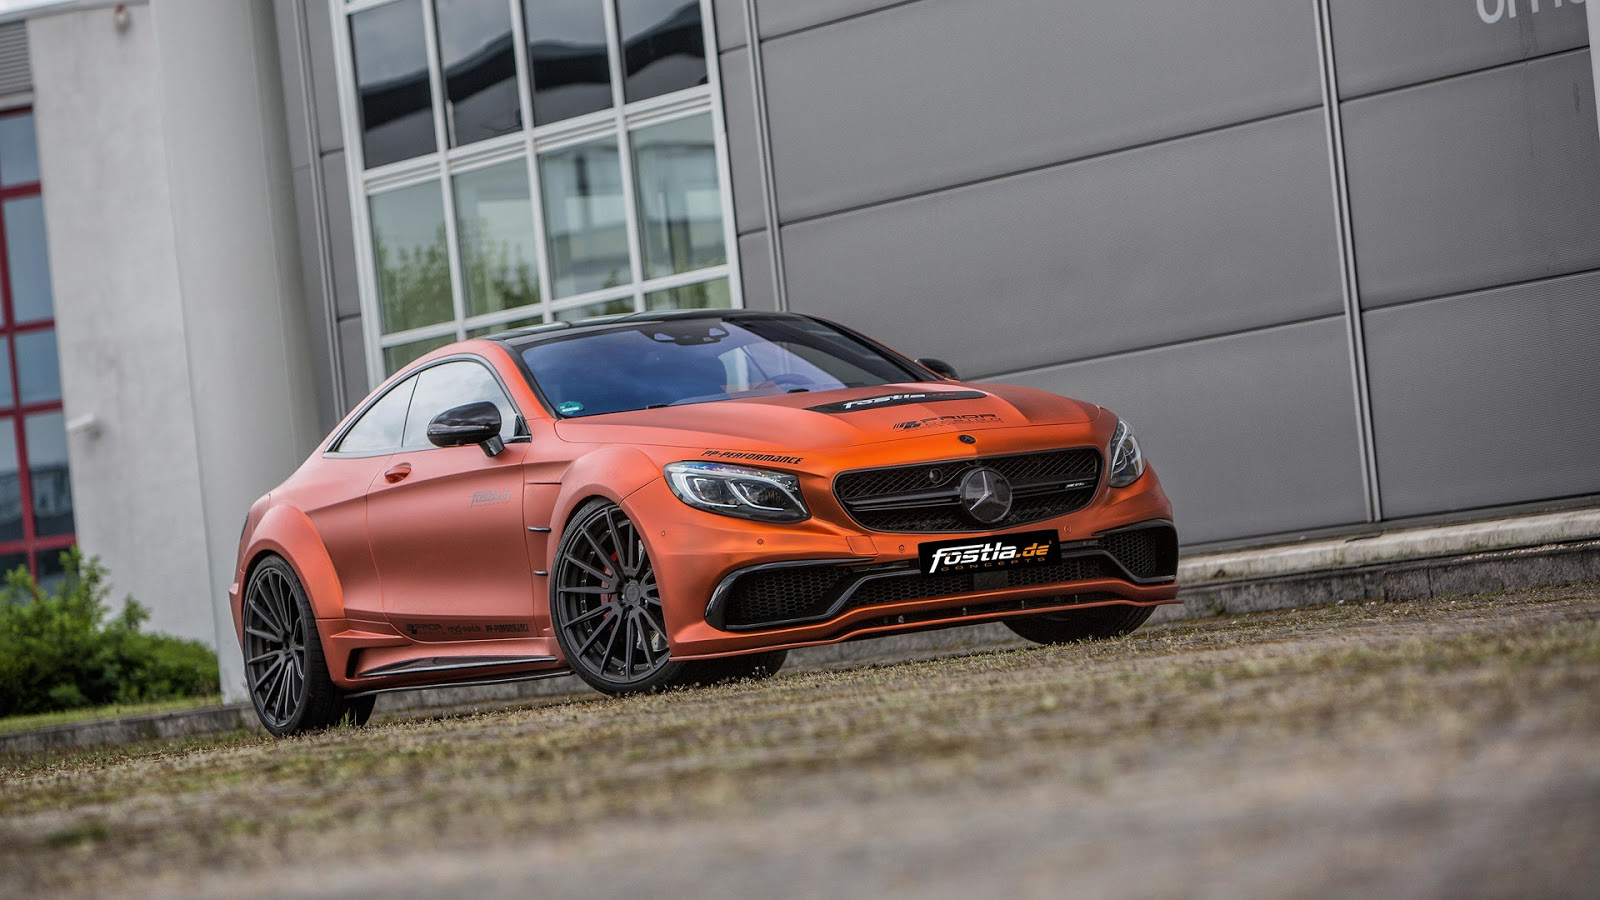 Fostla Goes All Out With Prior Design Mercedes Amg S63